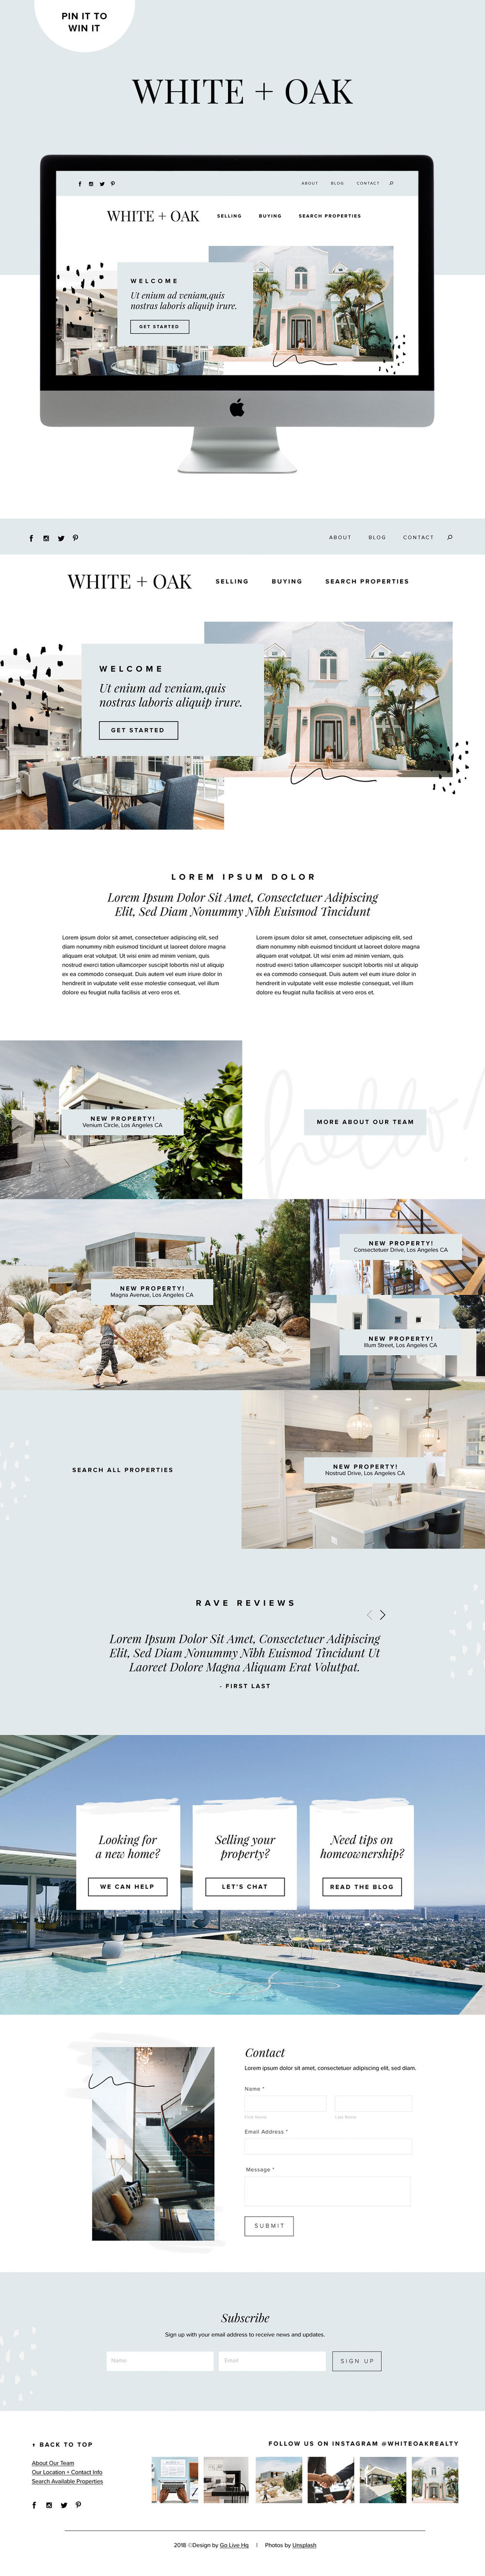 Modern and Fresh Website Design for Realtors & Home Designers | Go Live HQ